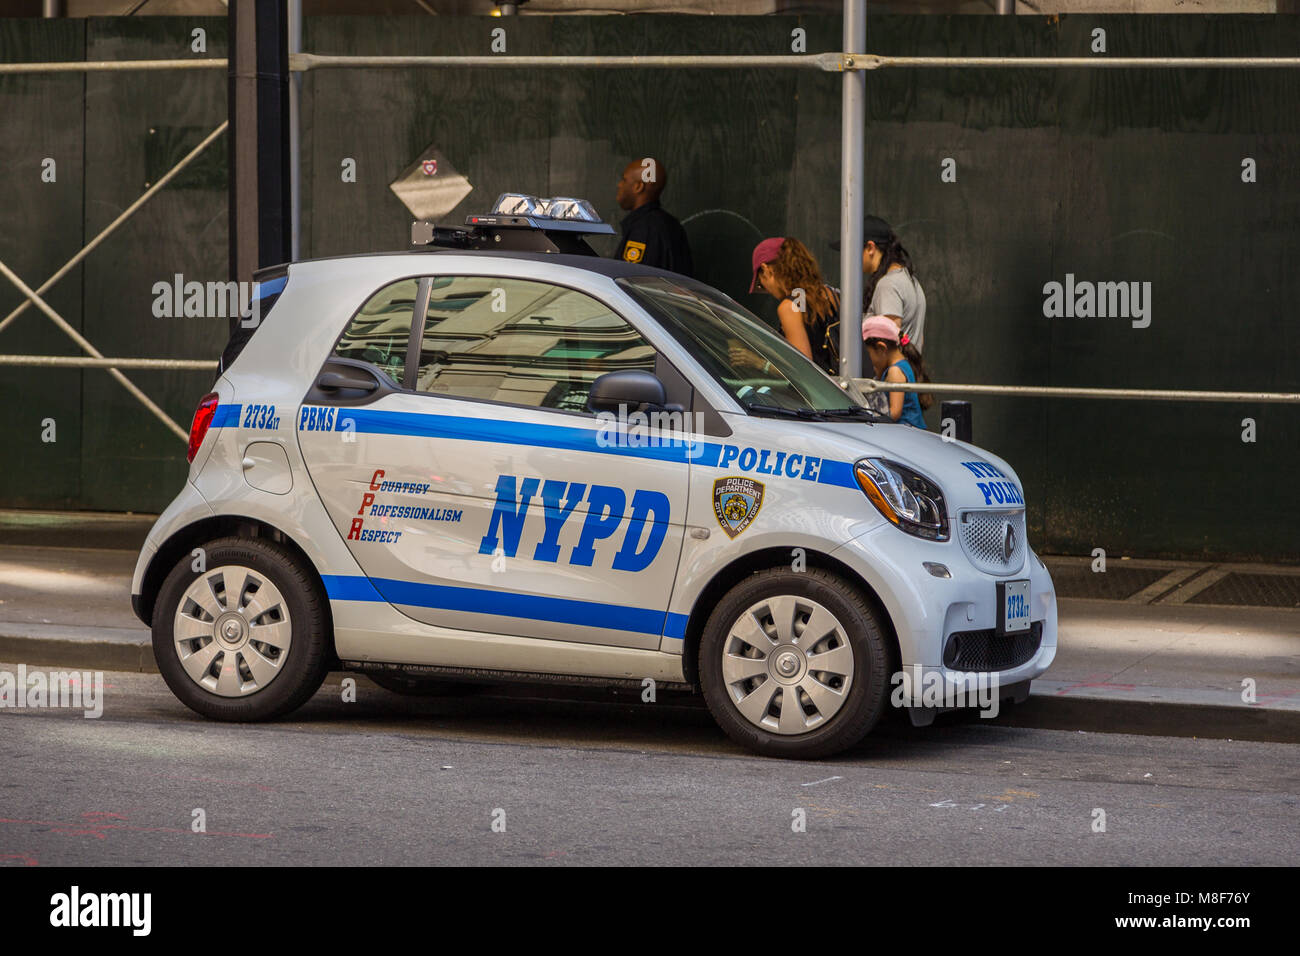 New York Nyc Usa August 26 2017 Police Nypd Smart Car On The